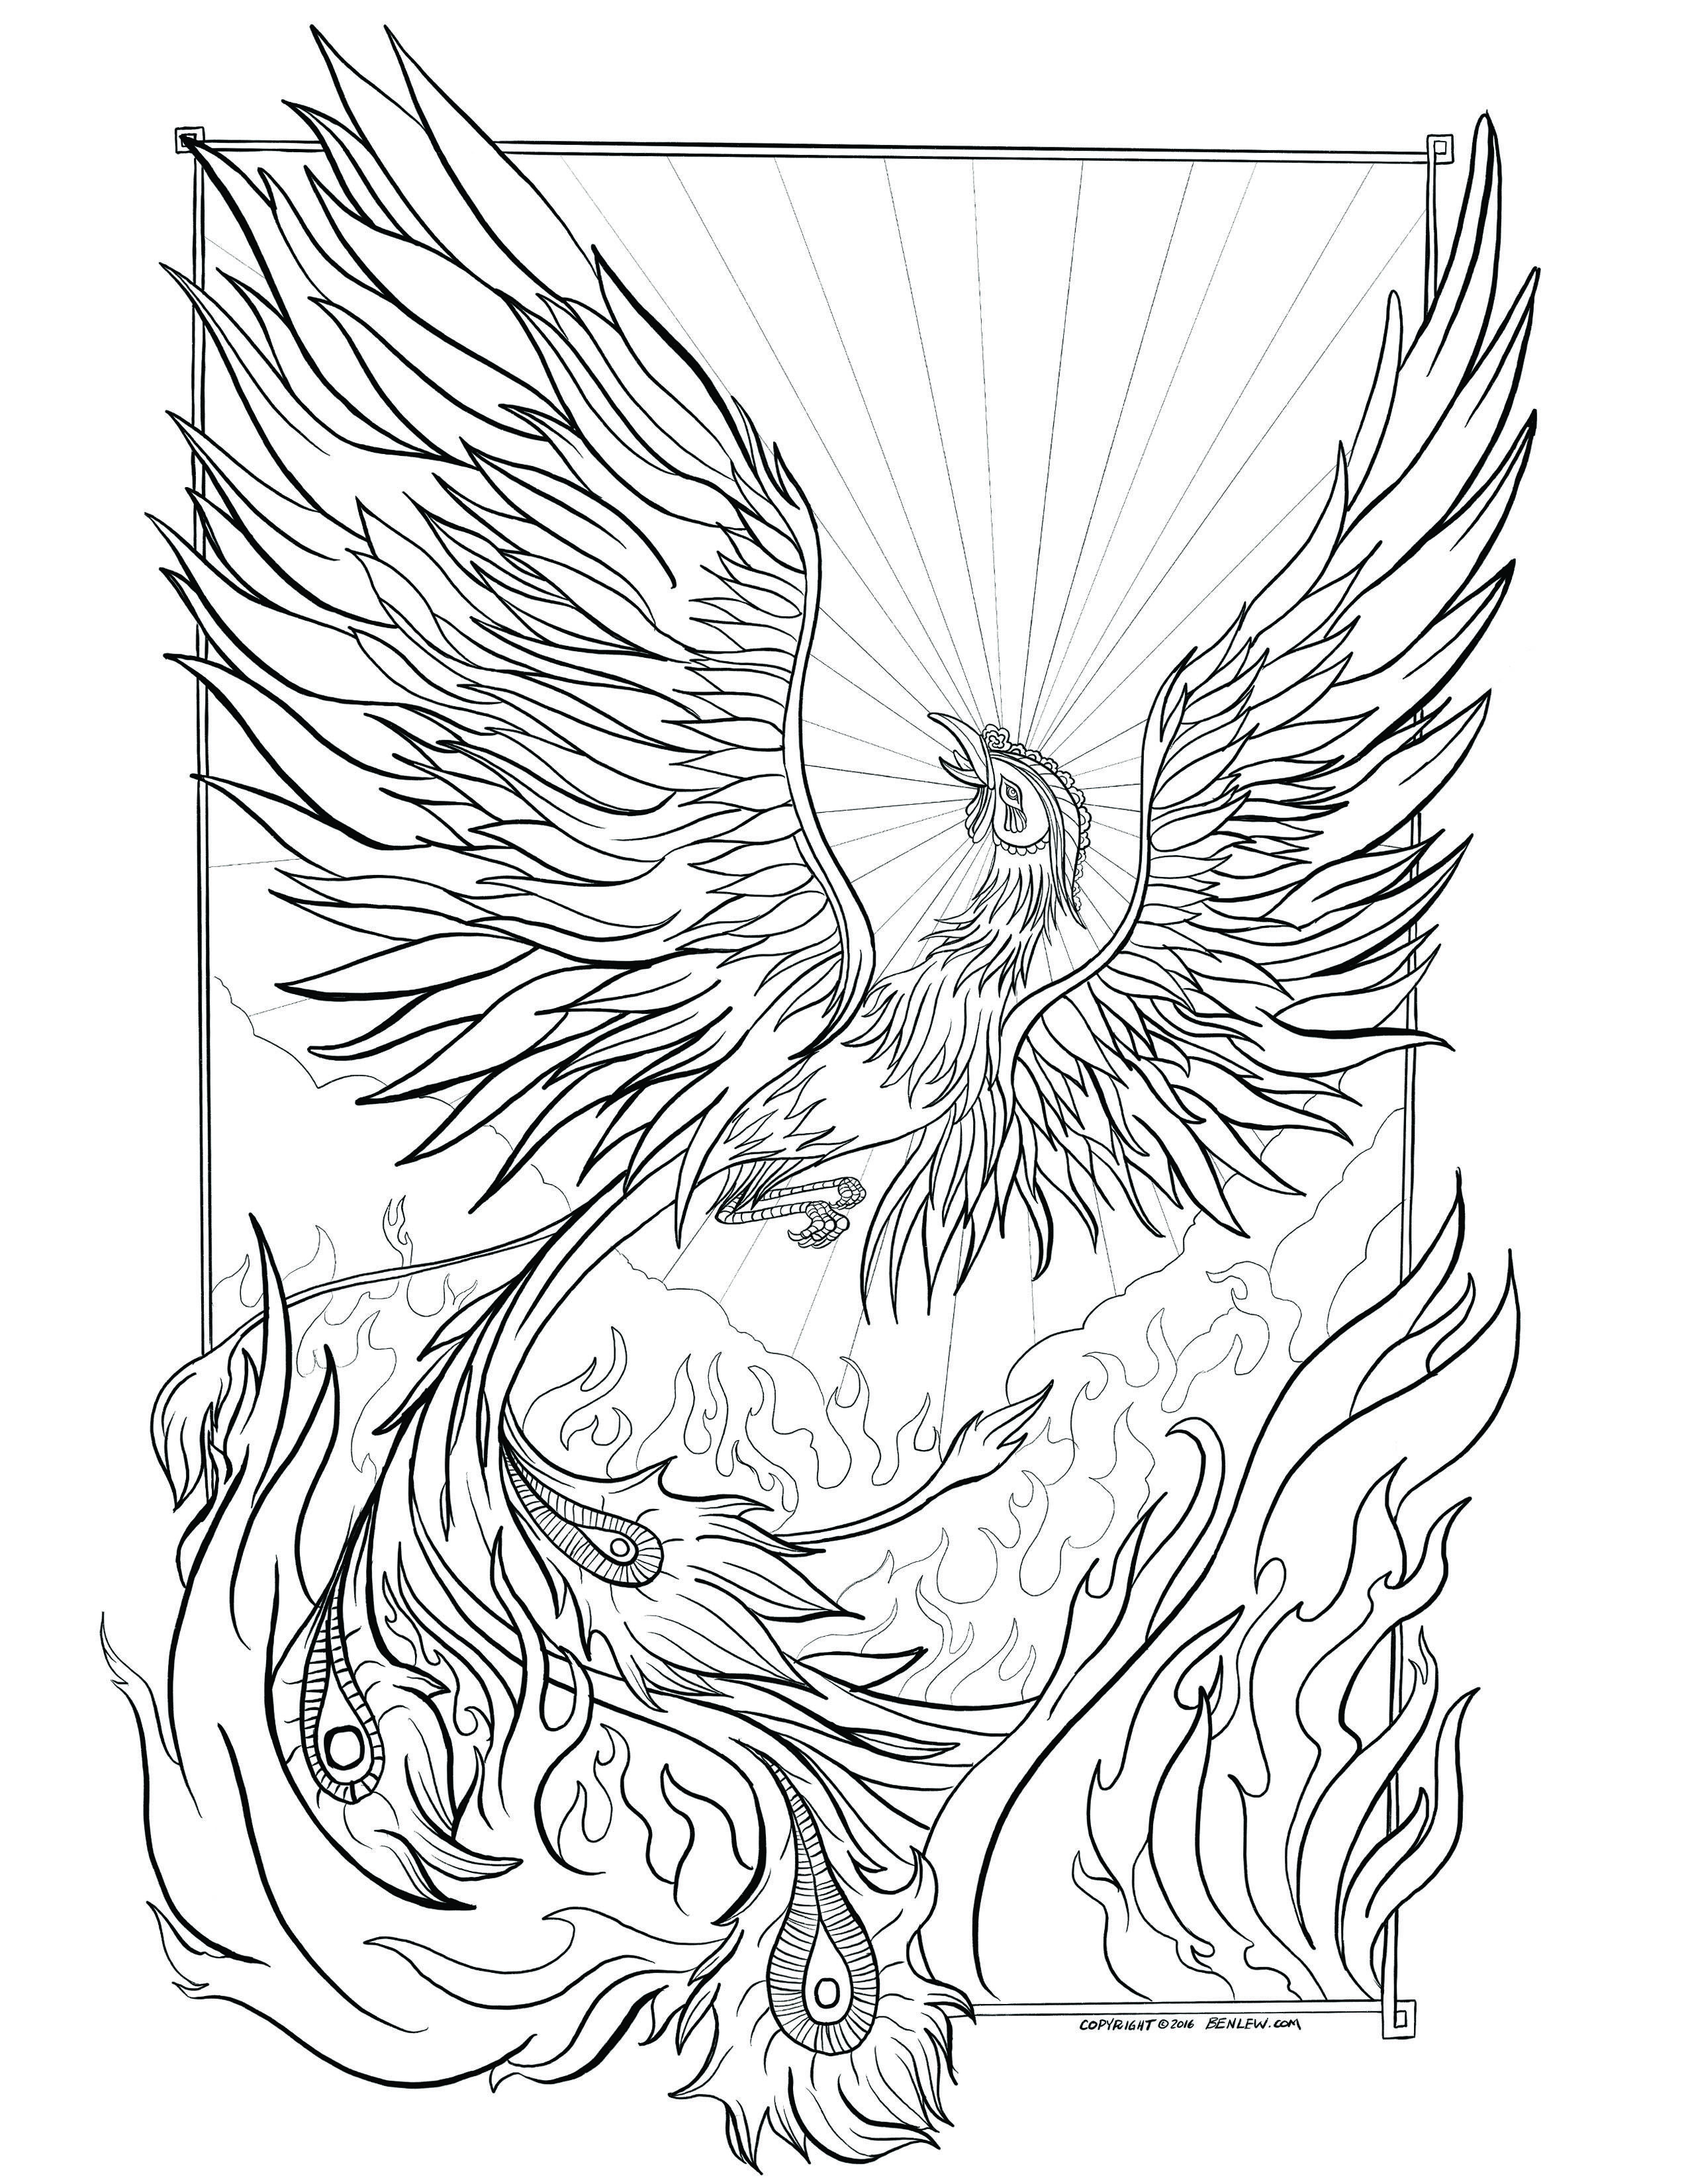 Rebirth Coloring Page Abstract Coloring Pages Bird Coloring Pages Mermaid Coloring Pages